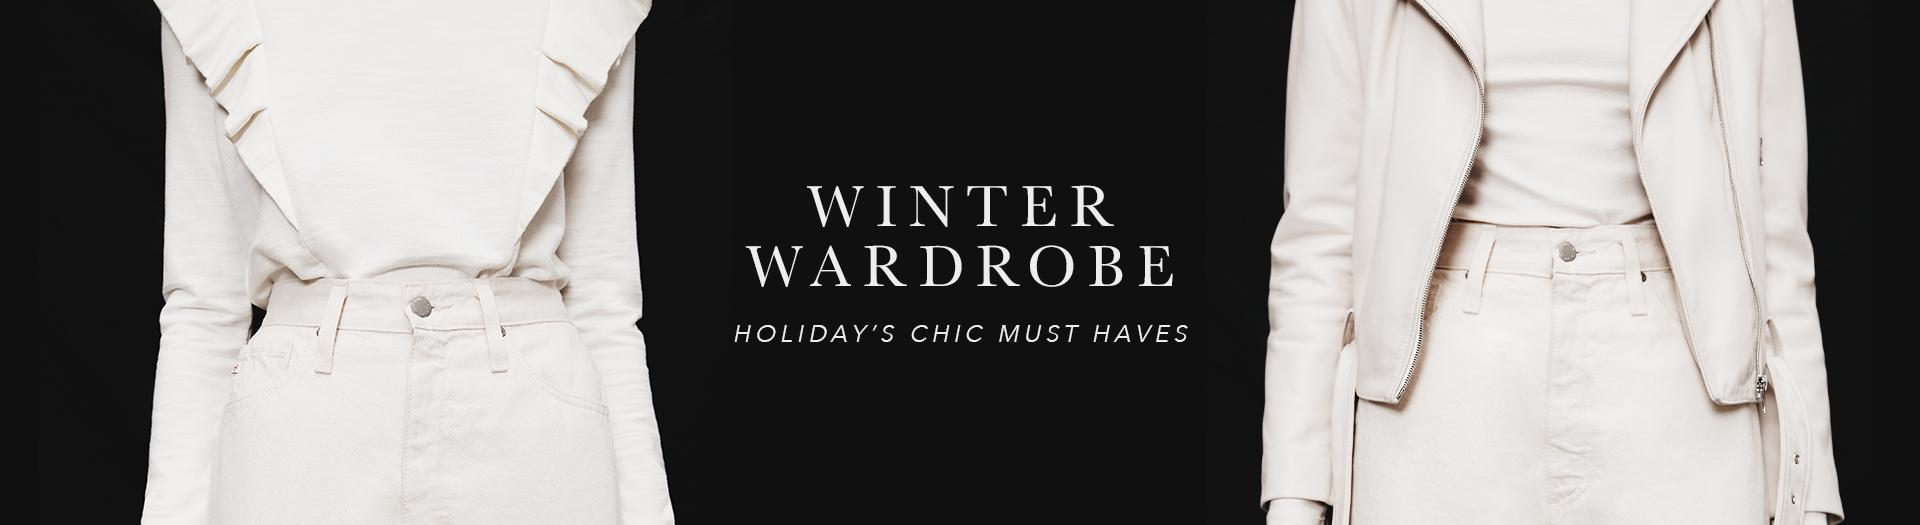 Our winter wardrobe collection promises to keep you lookin' damn good all season long (and beyond).